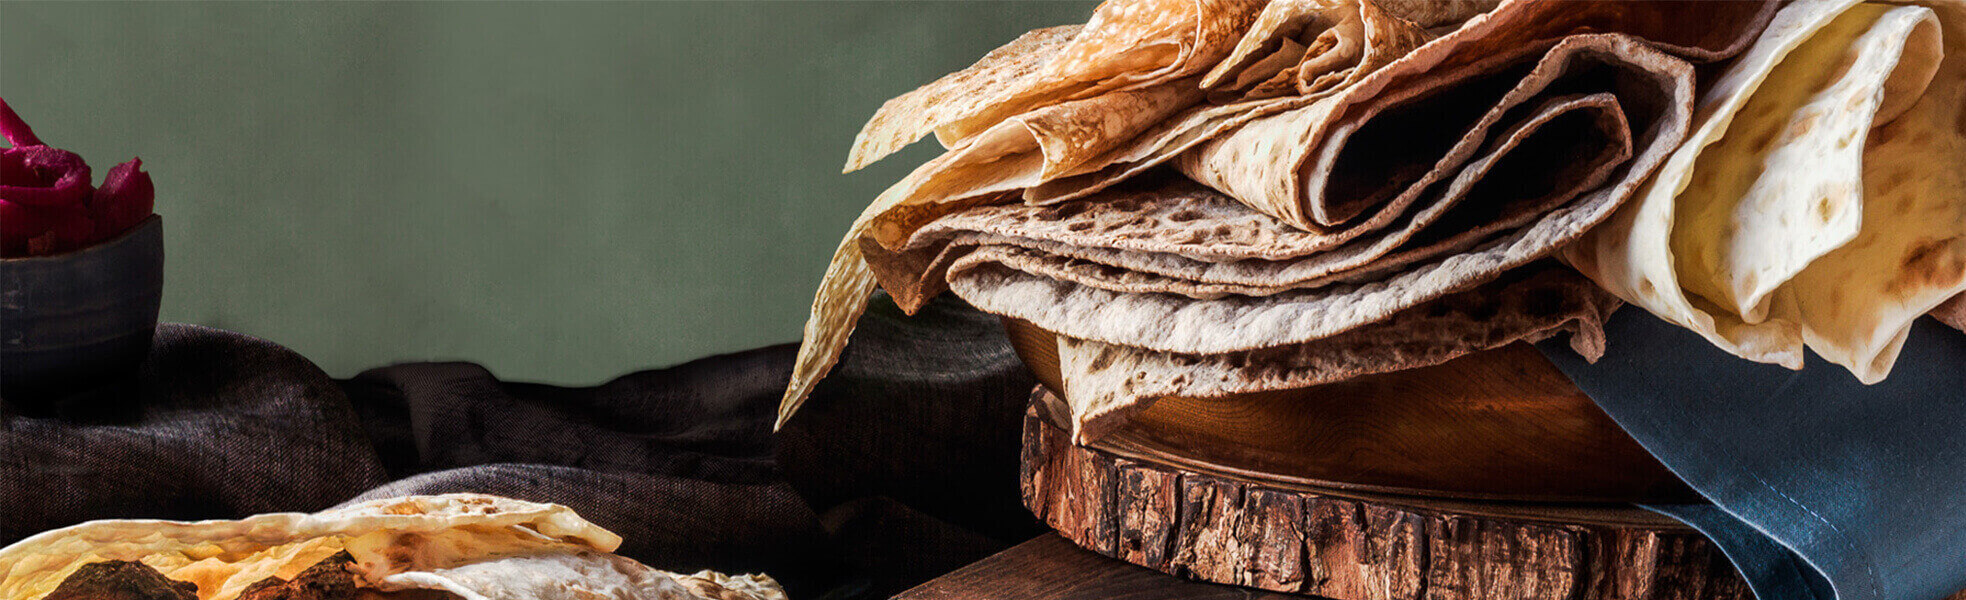 Breadmasters-Araz-Breadmasters.com-Sangak-Lavash-Crisps-Sangakcrisps-flatbread-markook-thinnest-buy-bread-online-shop-bakery-recipes-vegan-foodies-sandwiches-wraps